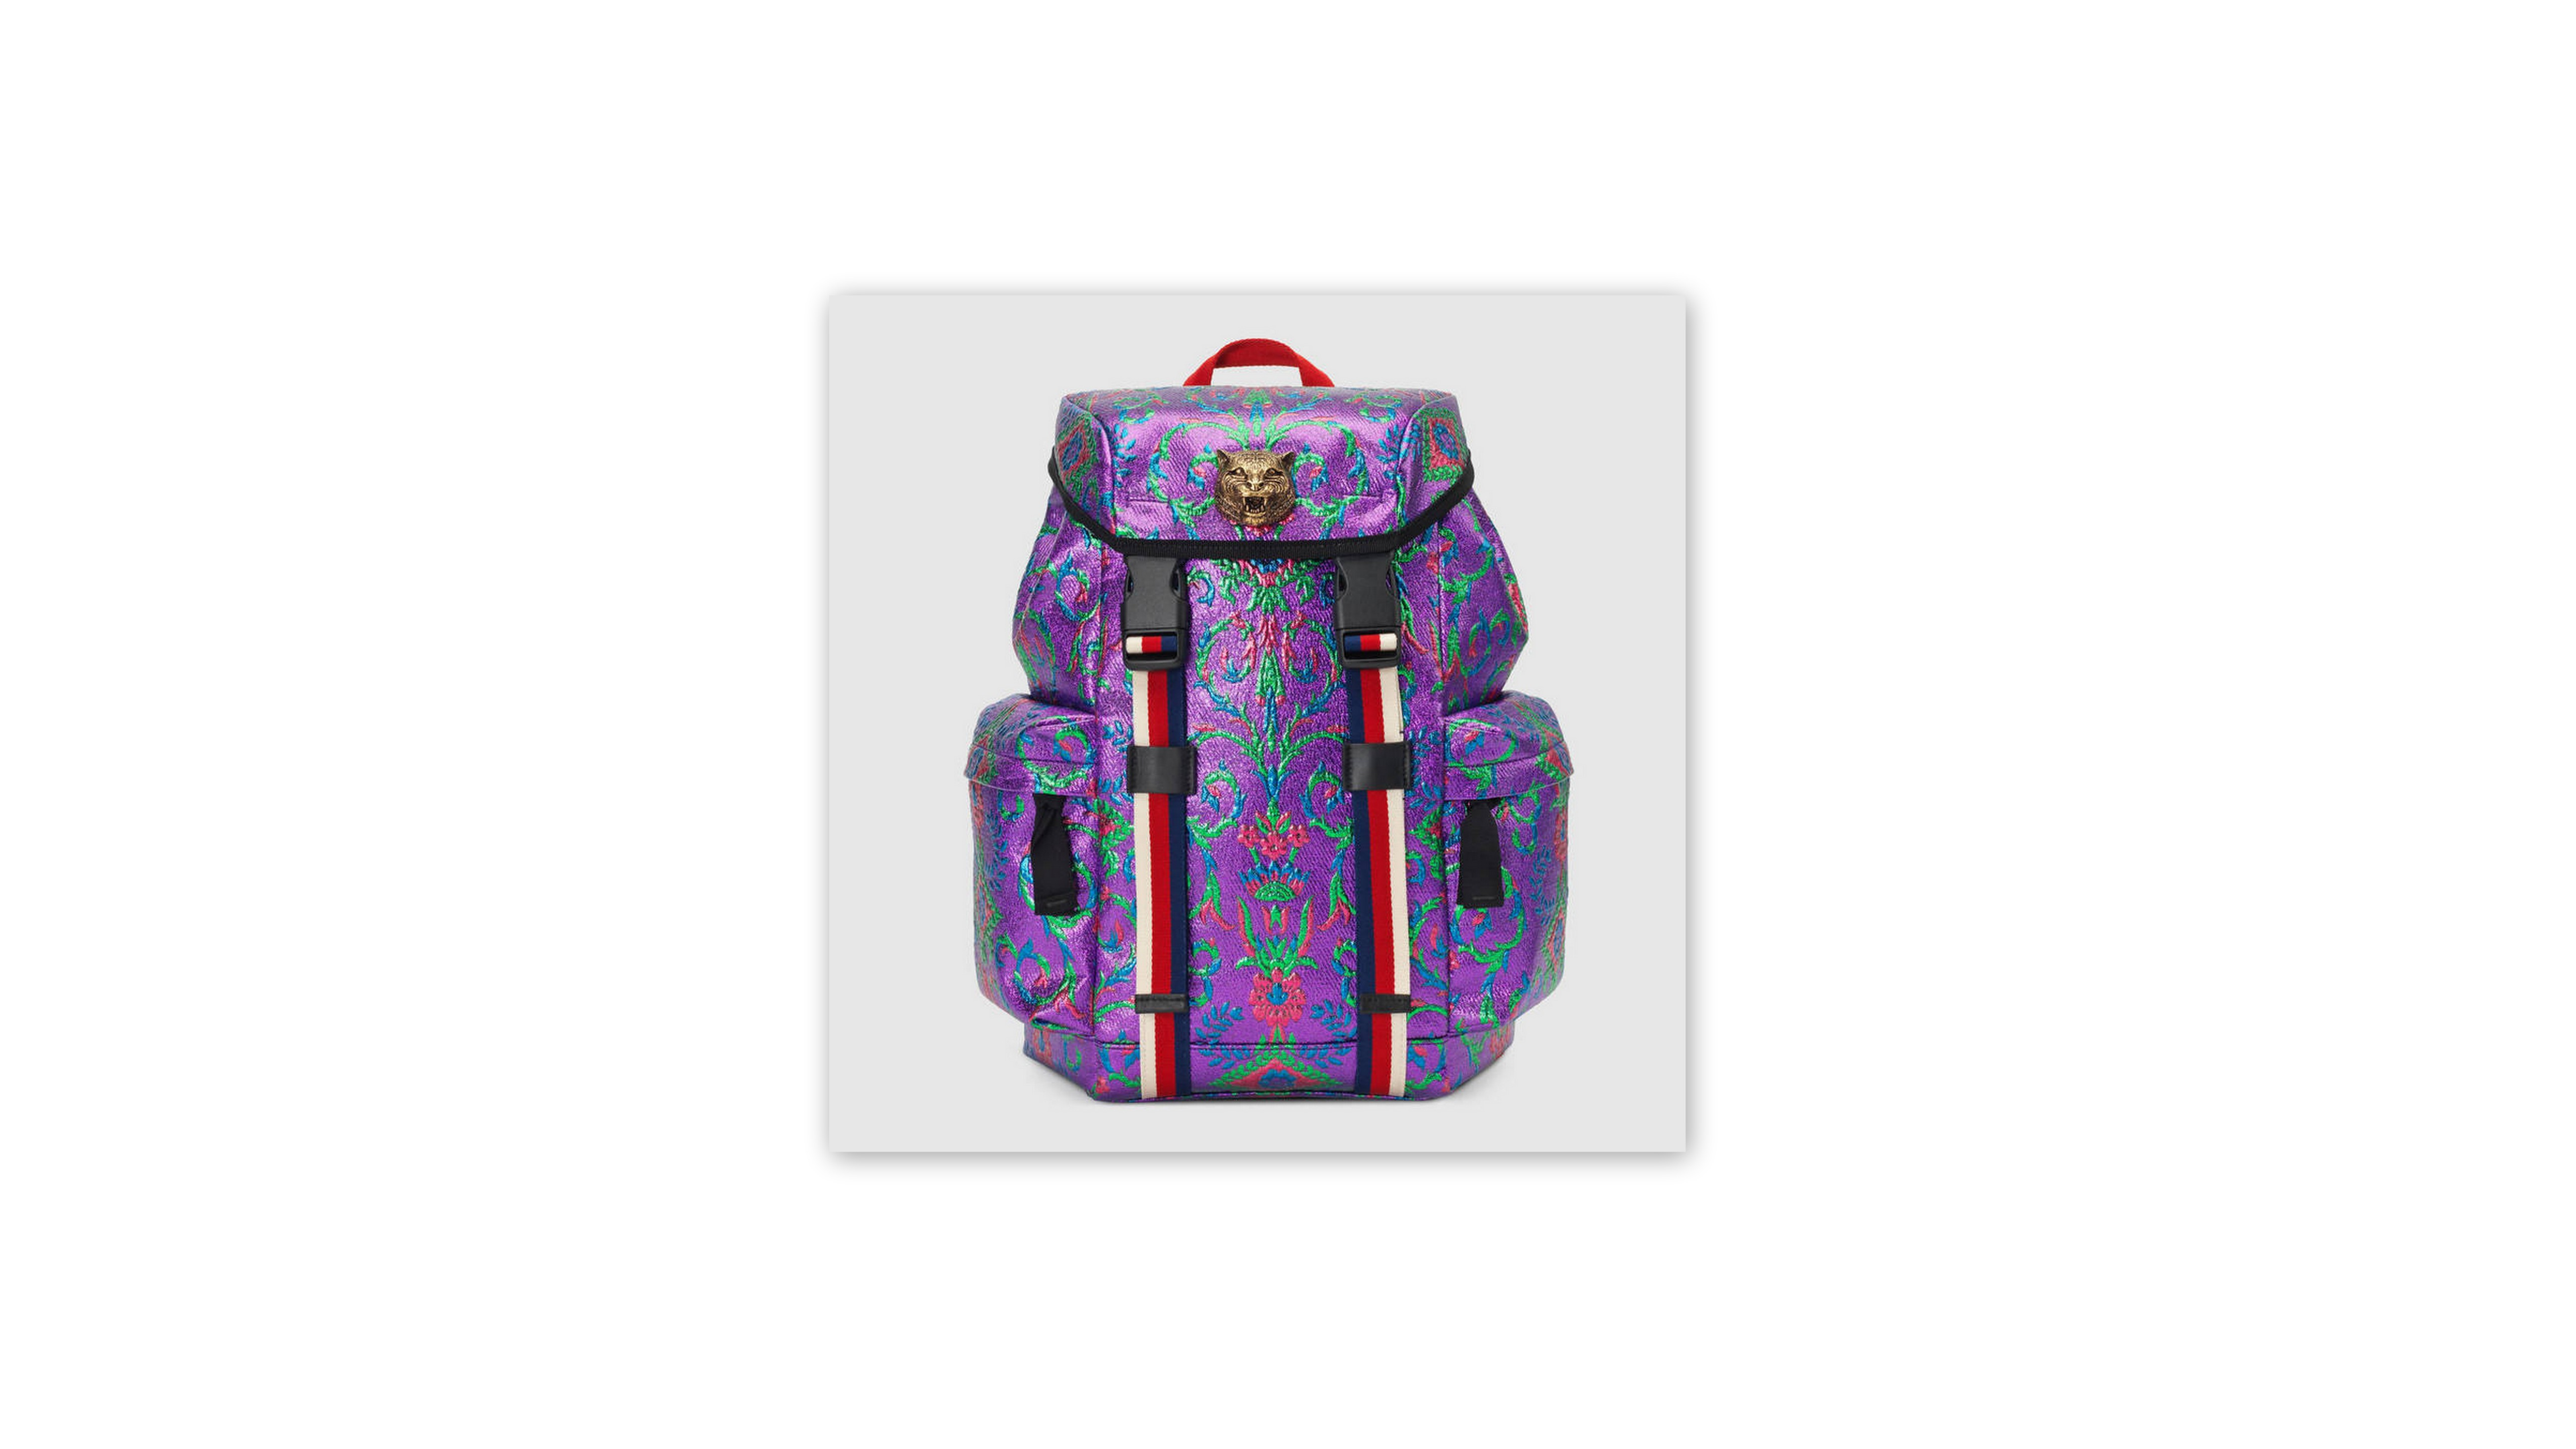 00ebd589a5f486 A shrink down version of the men's techpack, made in a multicolor brocade  with web detailing. This adorable Gucci backpack from the spring/summer  2017 will ...